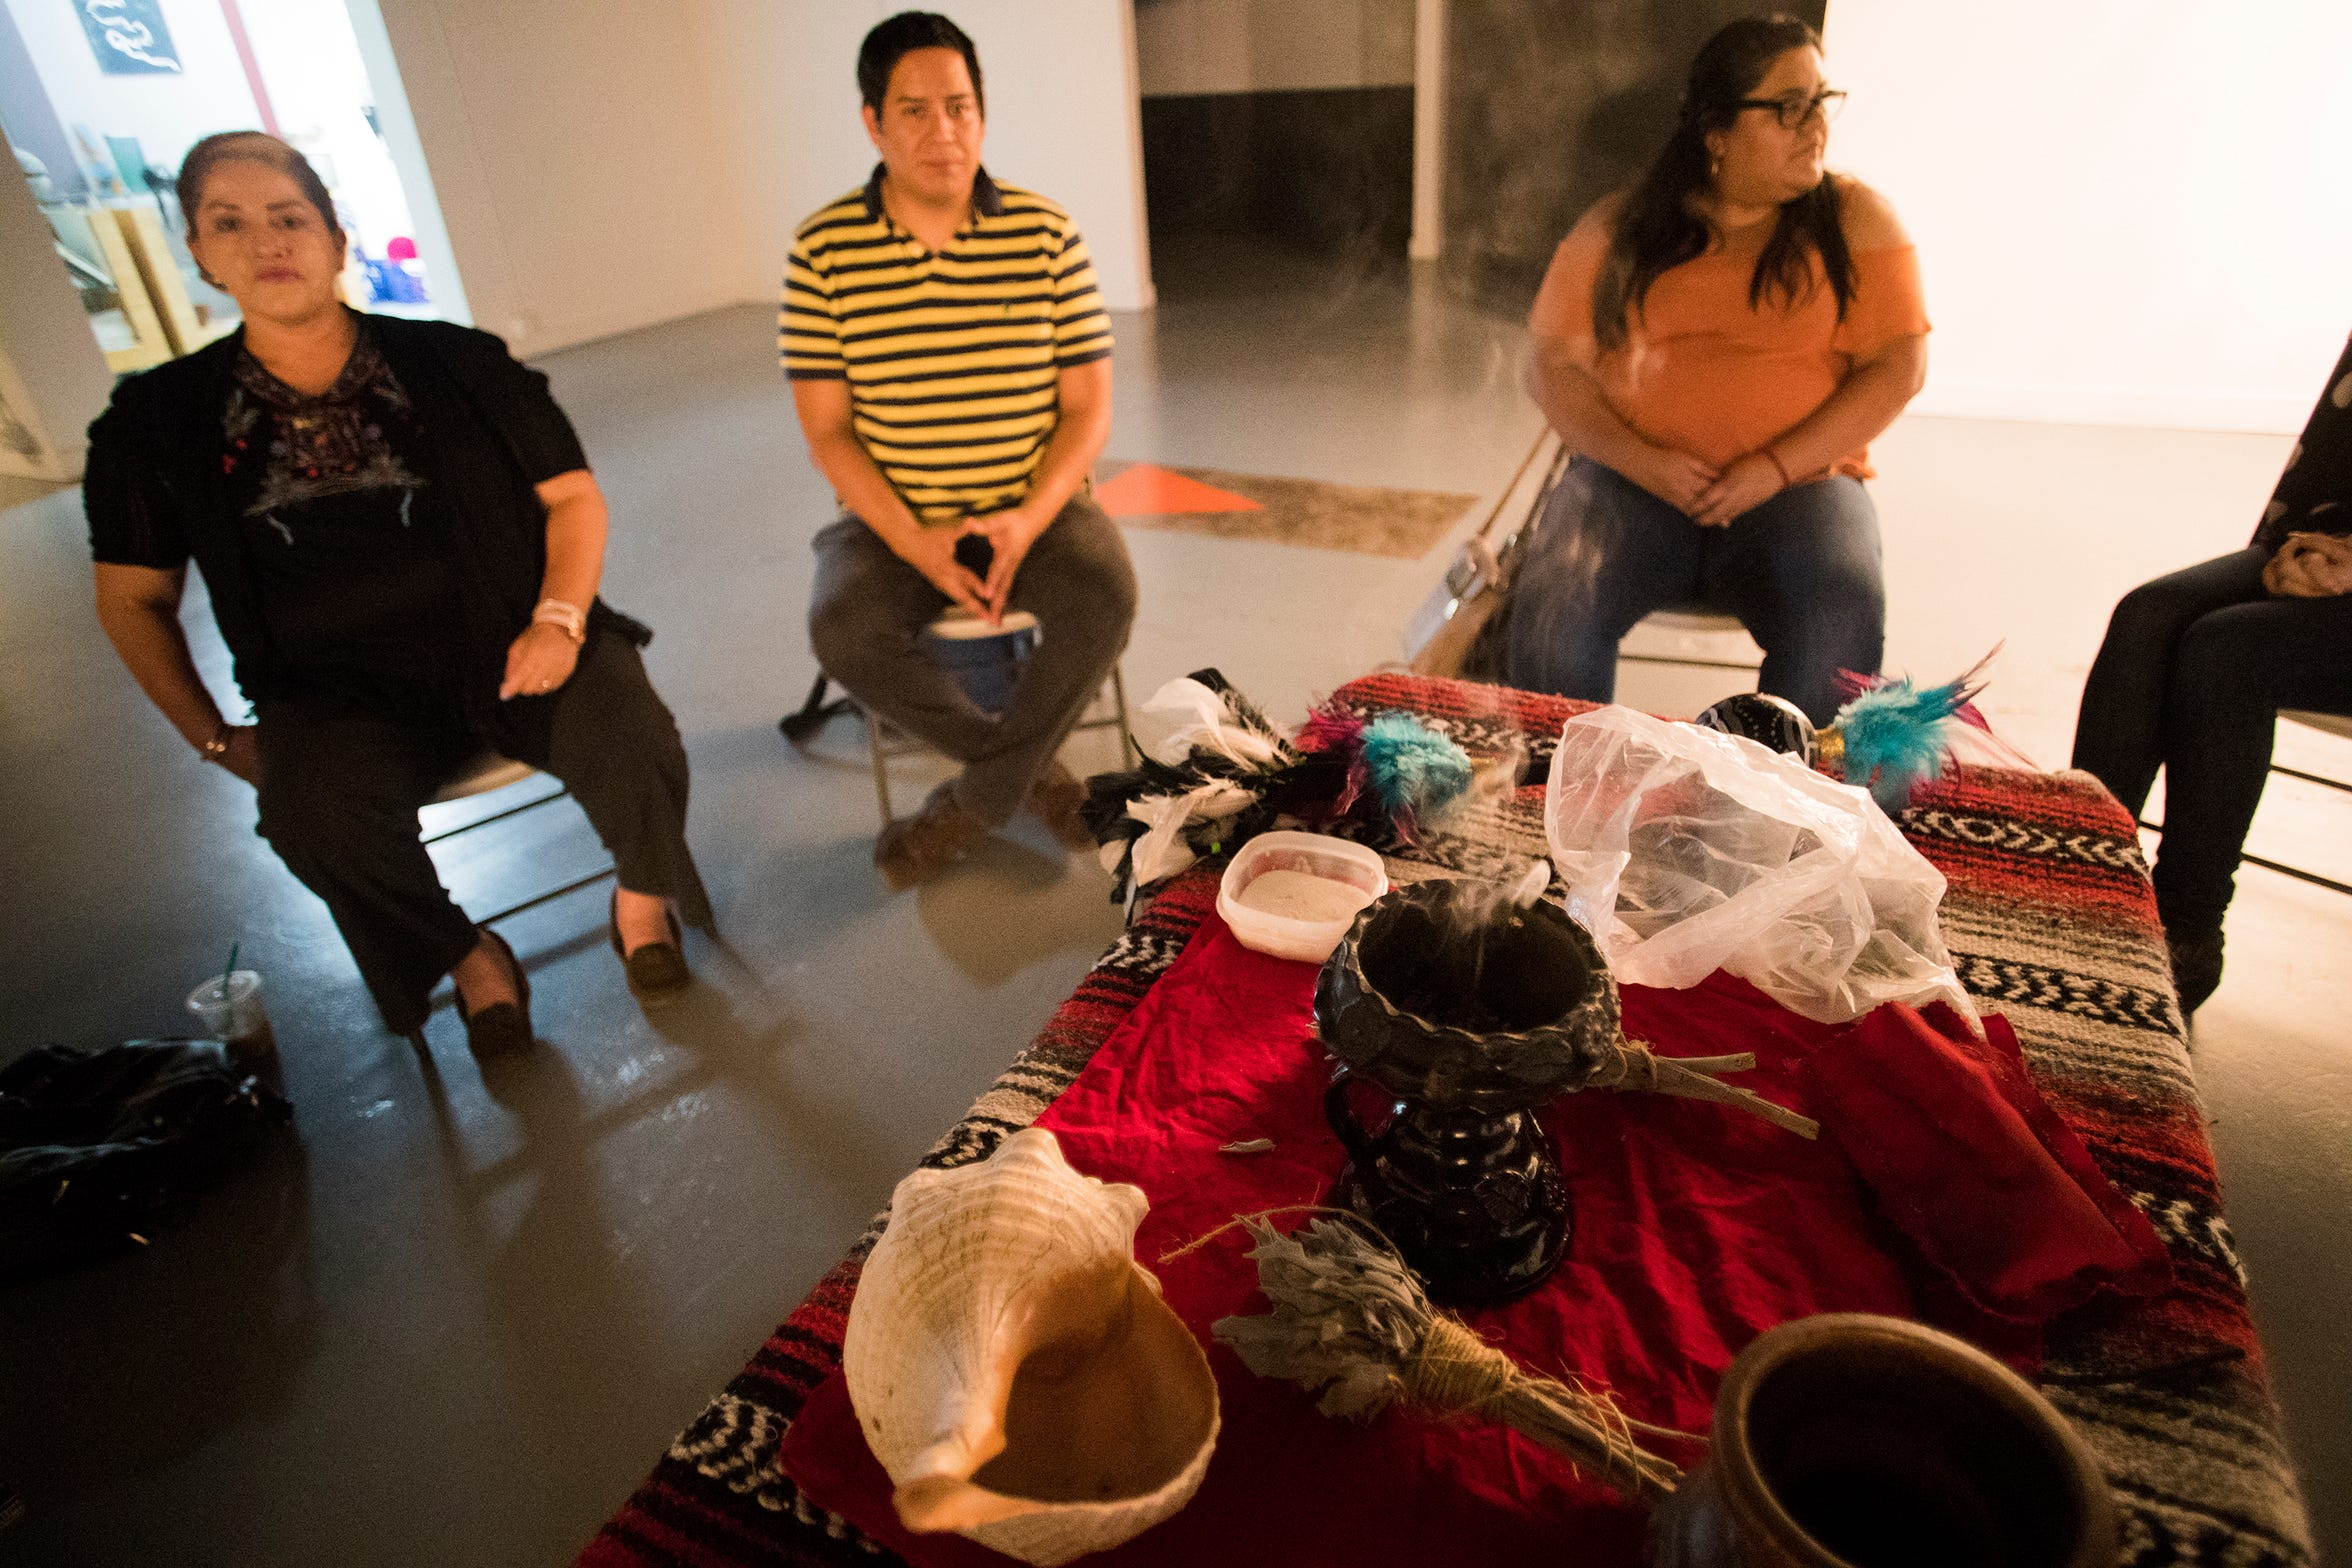 A healing circle brings together latinos to talk about issues that concern the community.